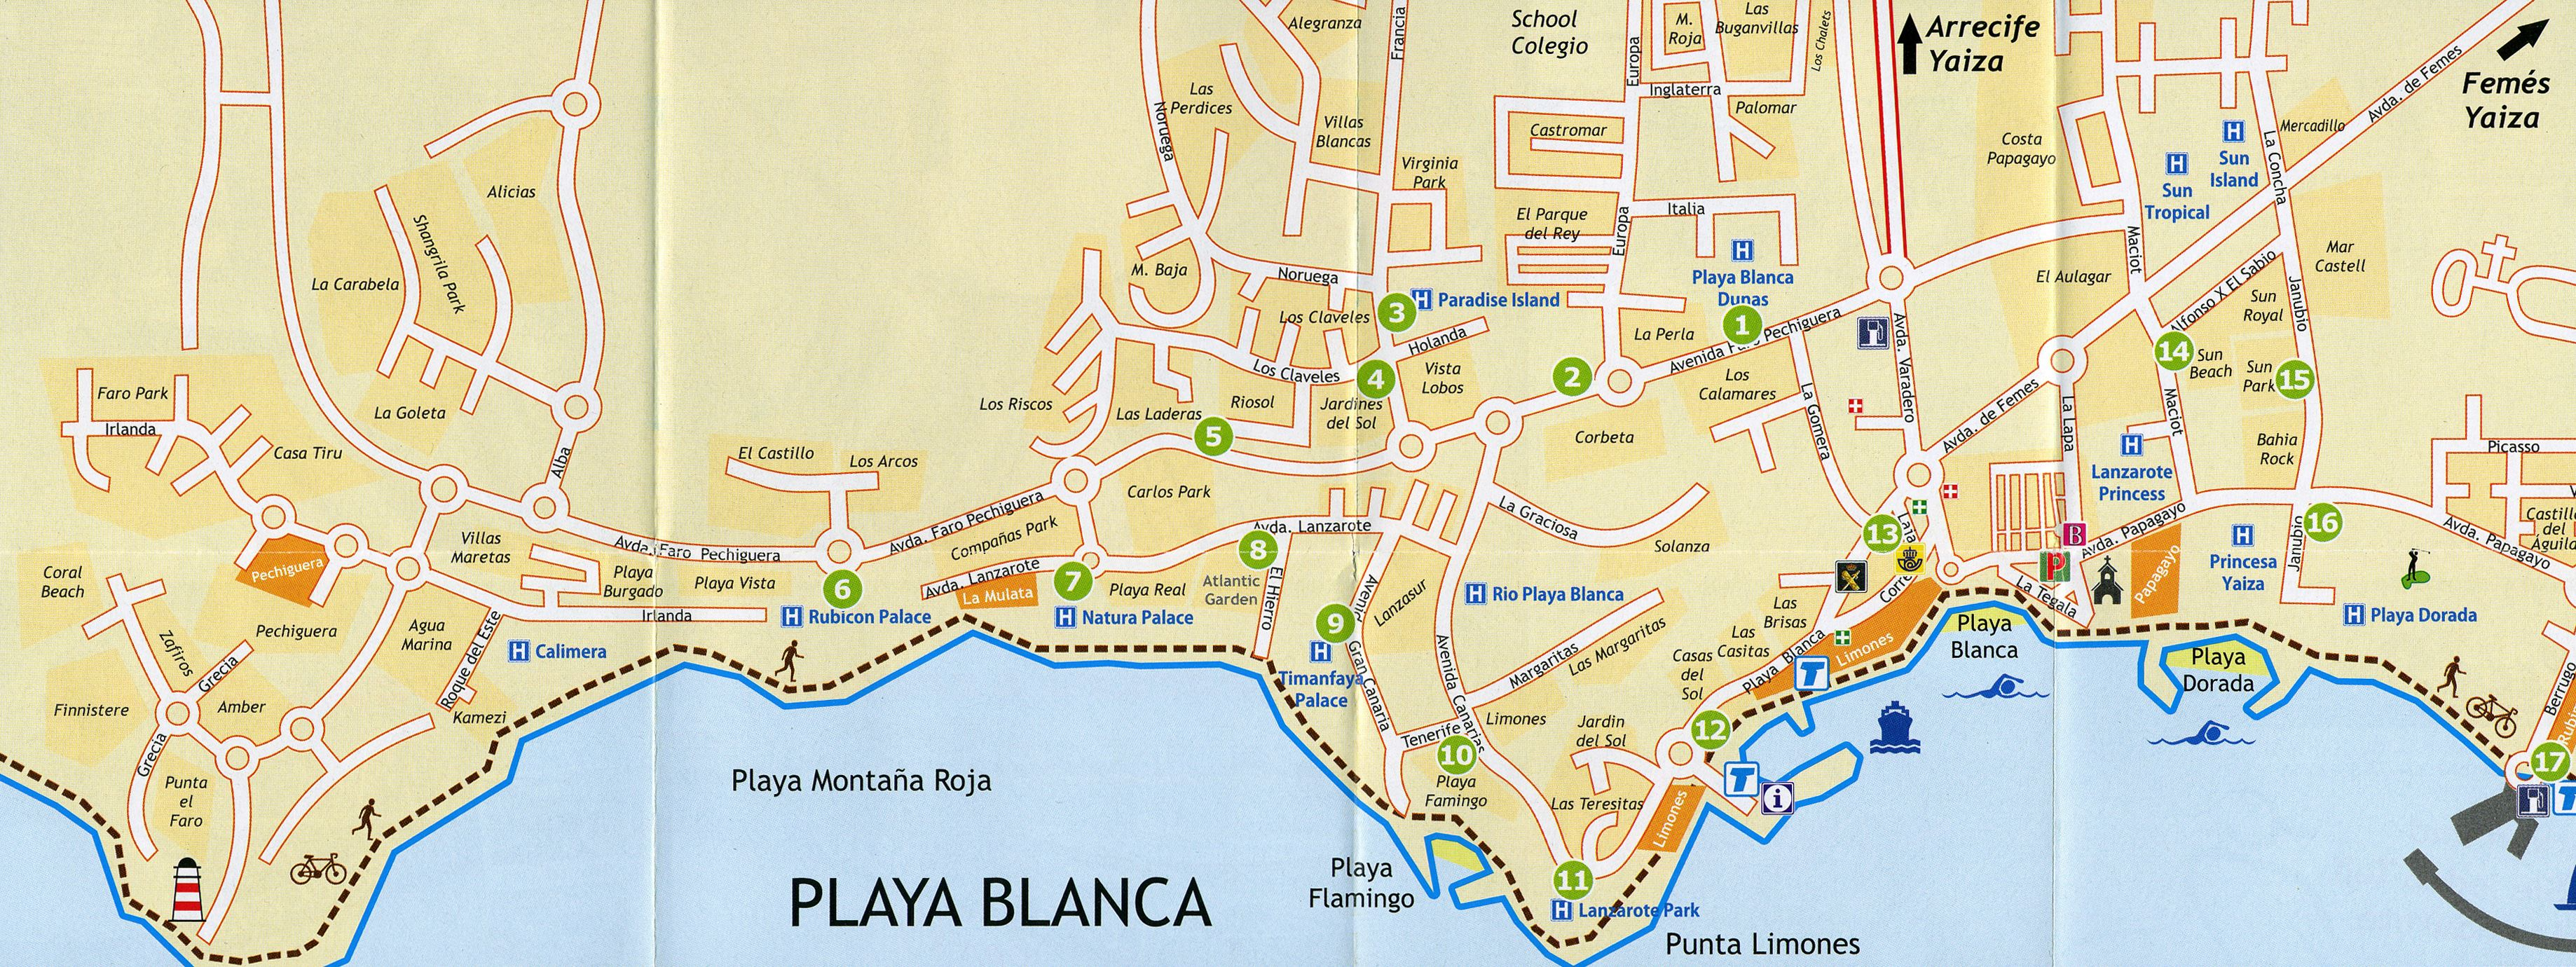 Map Of Spain Lanzarote.Large Playa Blanca Maps For Free Download And Print High